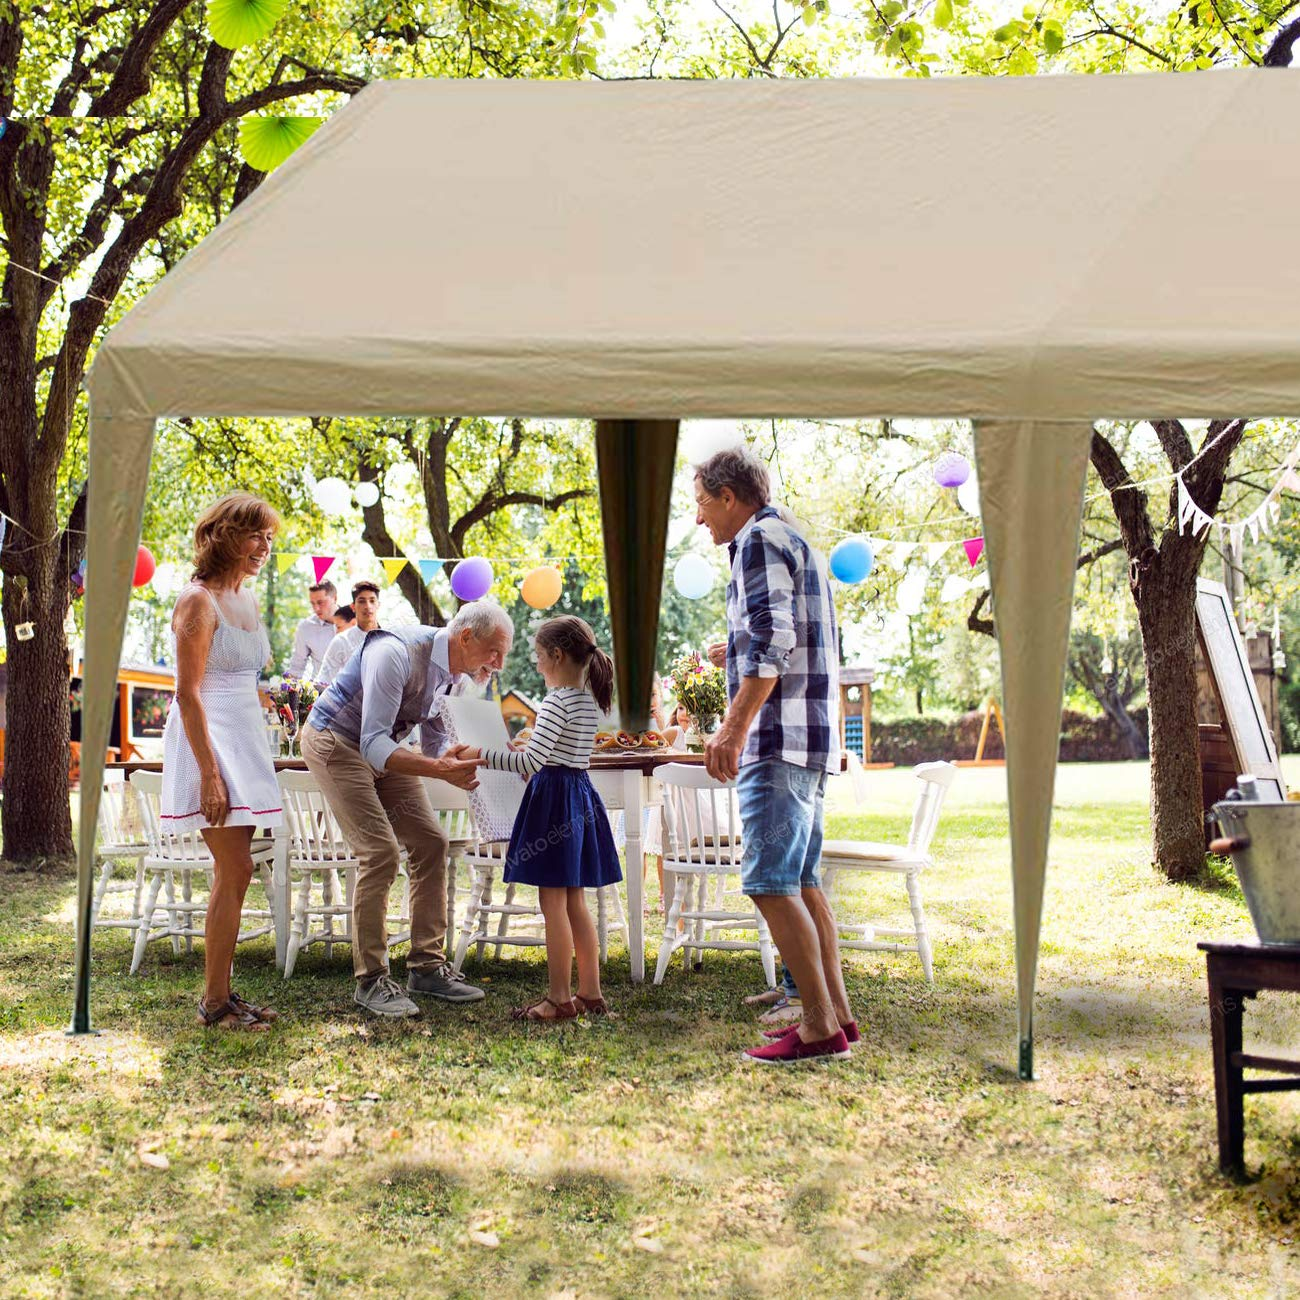 Abba Patio 10 X 20 Foot Portable Carport Canopy With 6